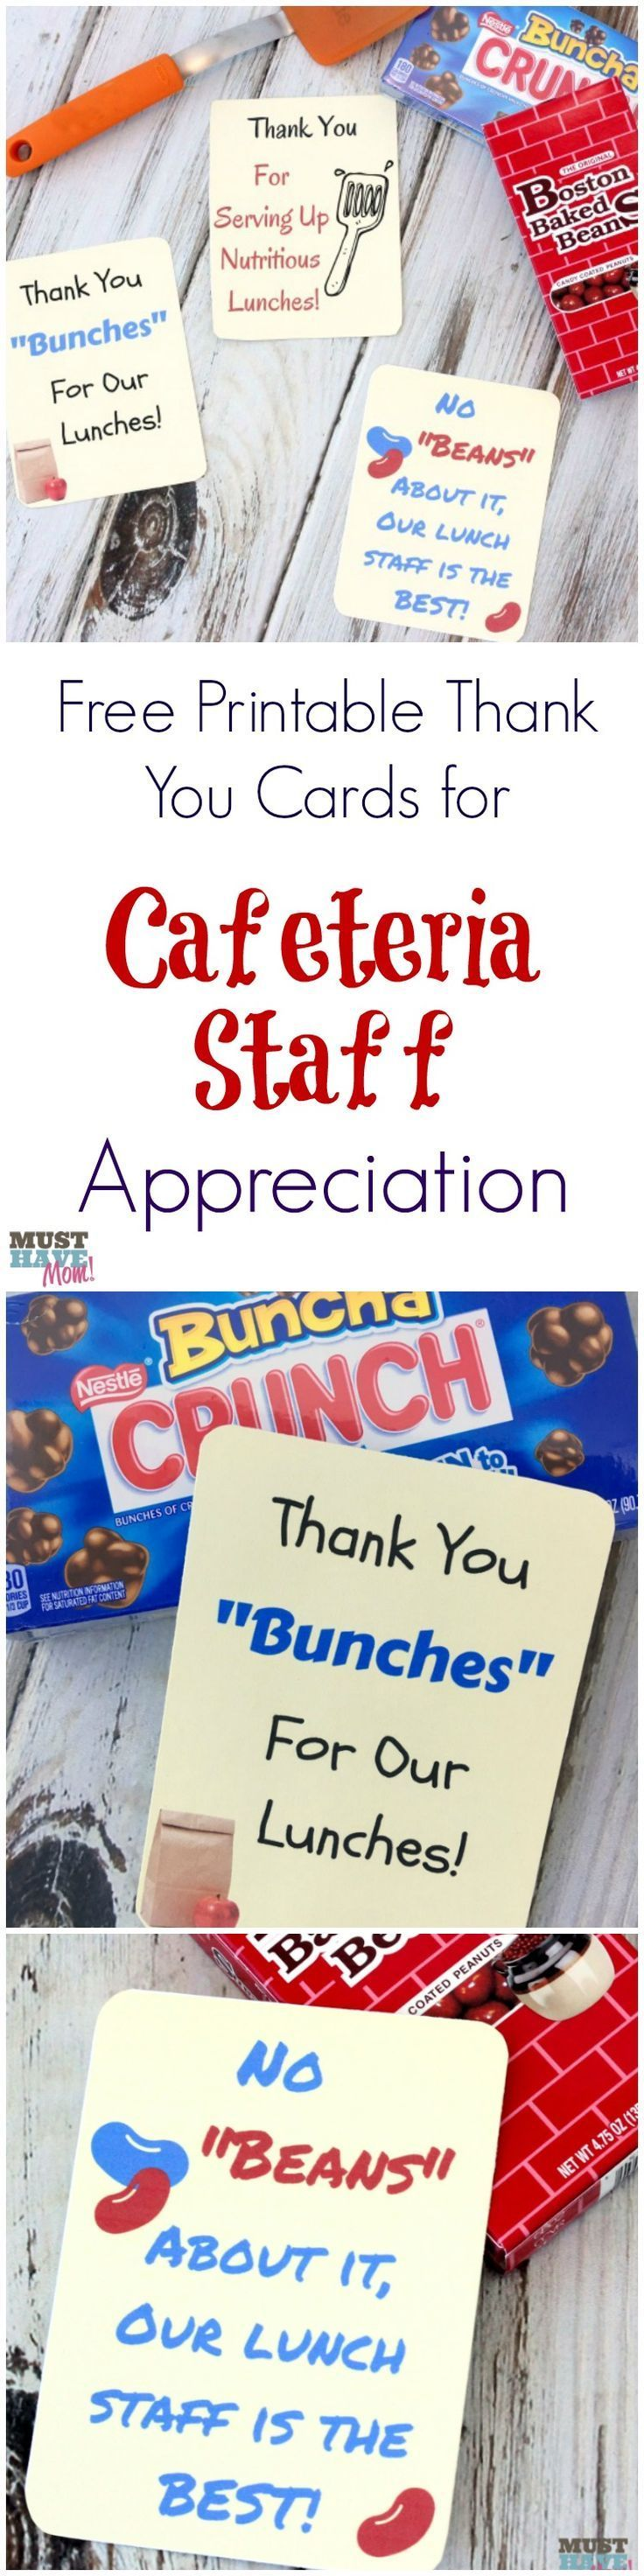 Free printable thank you cards for cafeteria staff appreciation! Celebrate school lunch hero day and thank those that provided school lunches for your child each day! #appreciationgifts